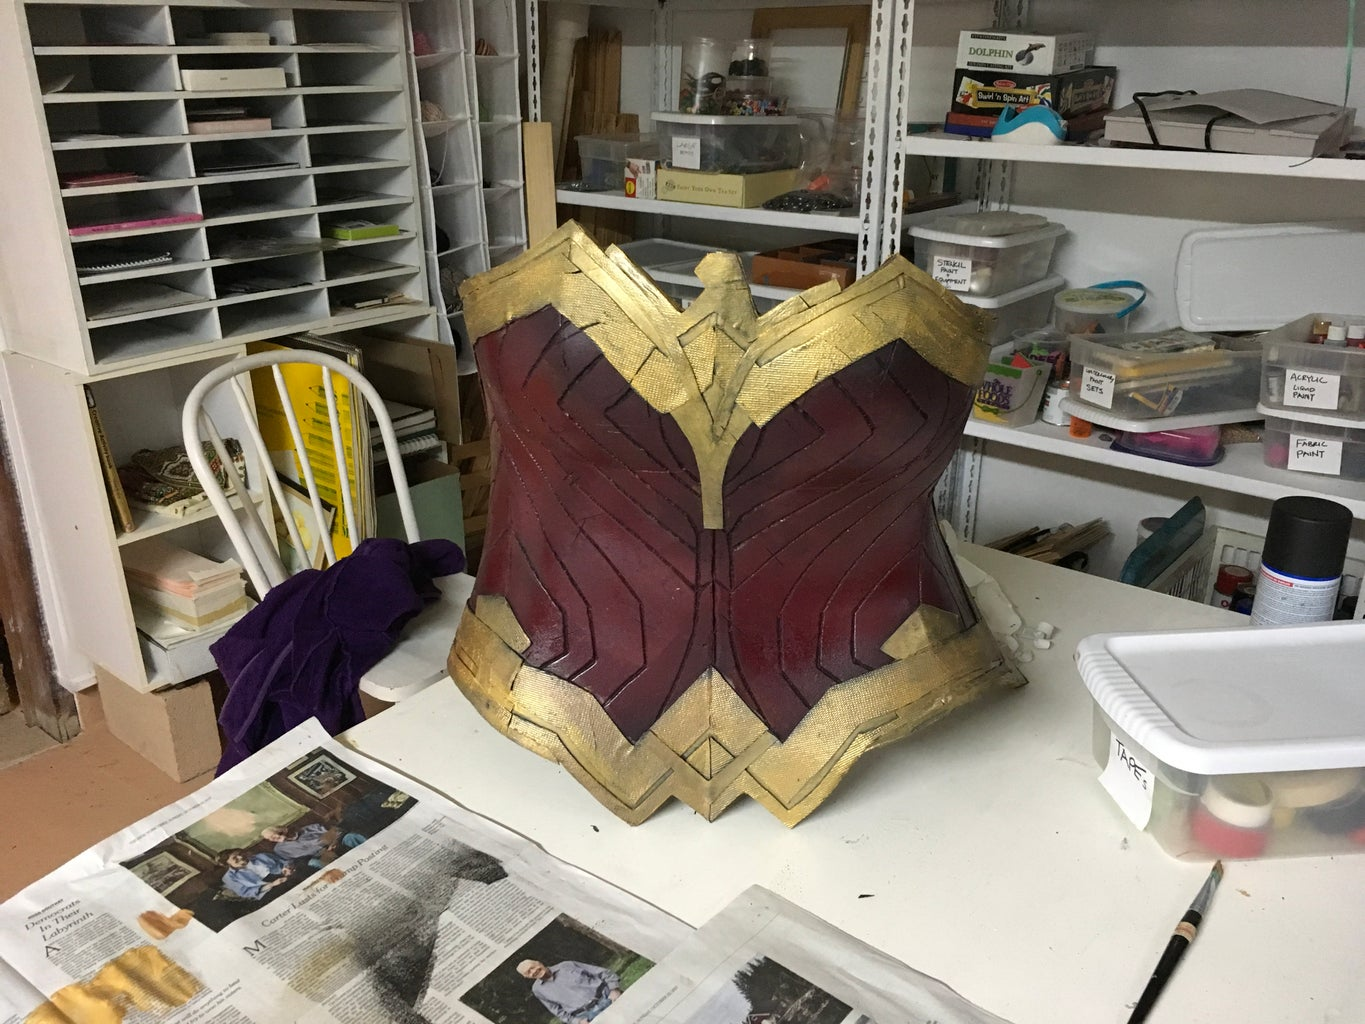 Breastplate/Armour: Detailing